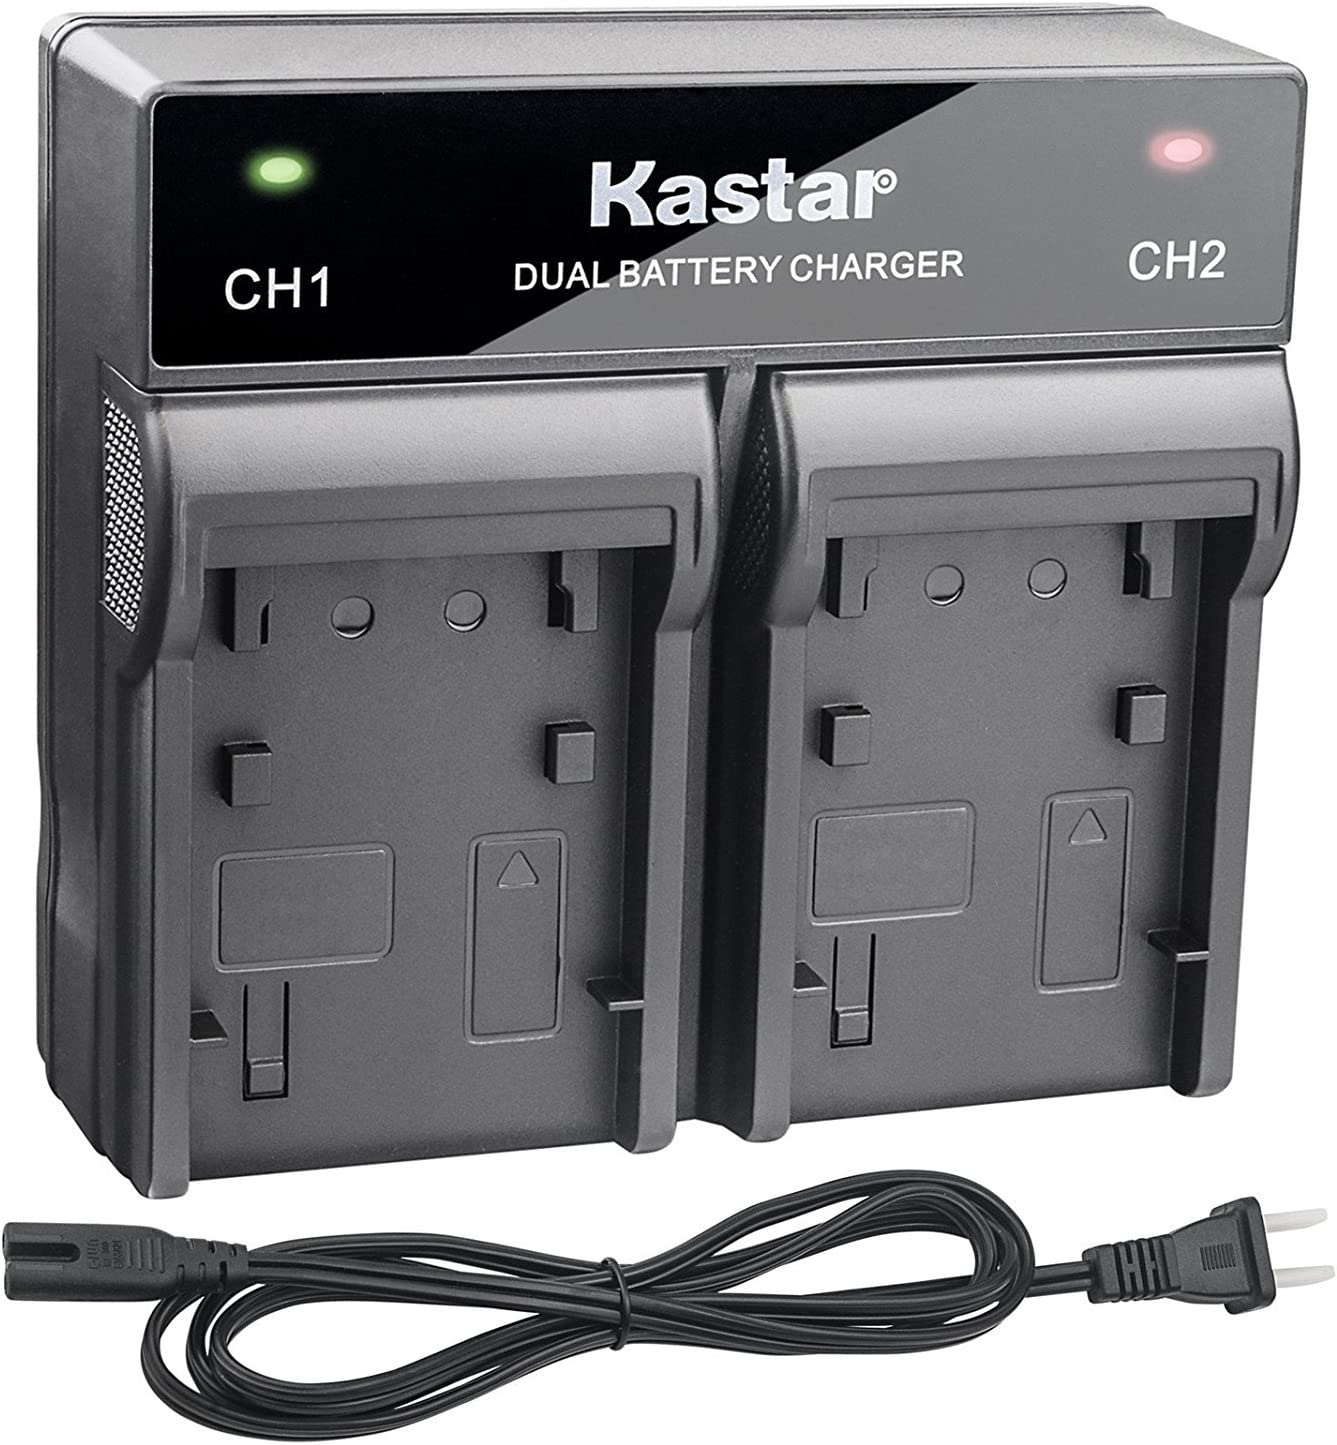 Kastar Fast Dual Charger for Sony NP-F970 NP-F975 NP-F960 NP-F950 NP-F930 NP-F770 NP-F750 NP-F730 NP-F570 NP-F550 NP-F530 NP-F330 and 308C TTV-204 Pad-22 LED Video Light or Moniter Backup Battery